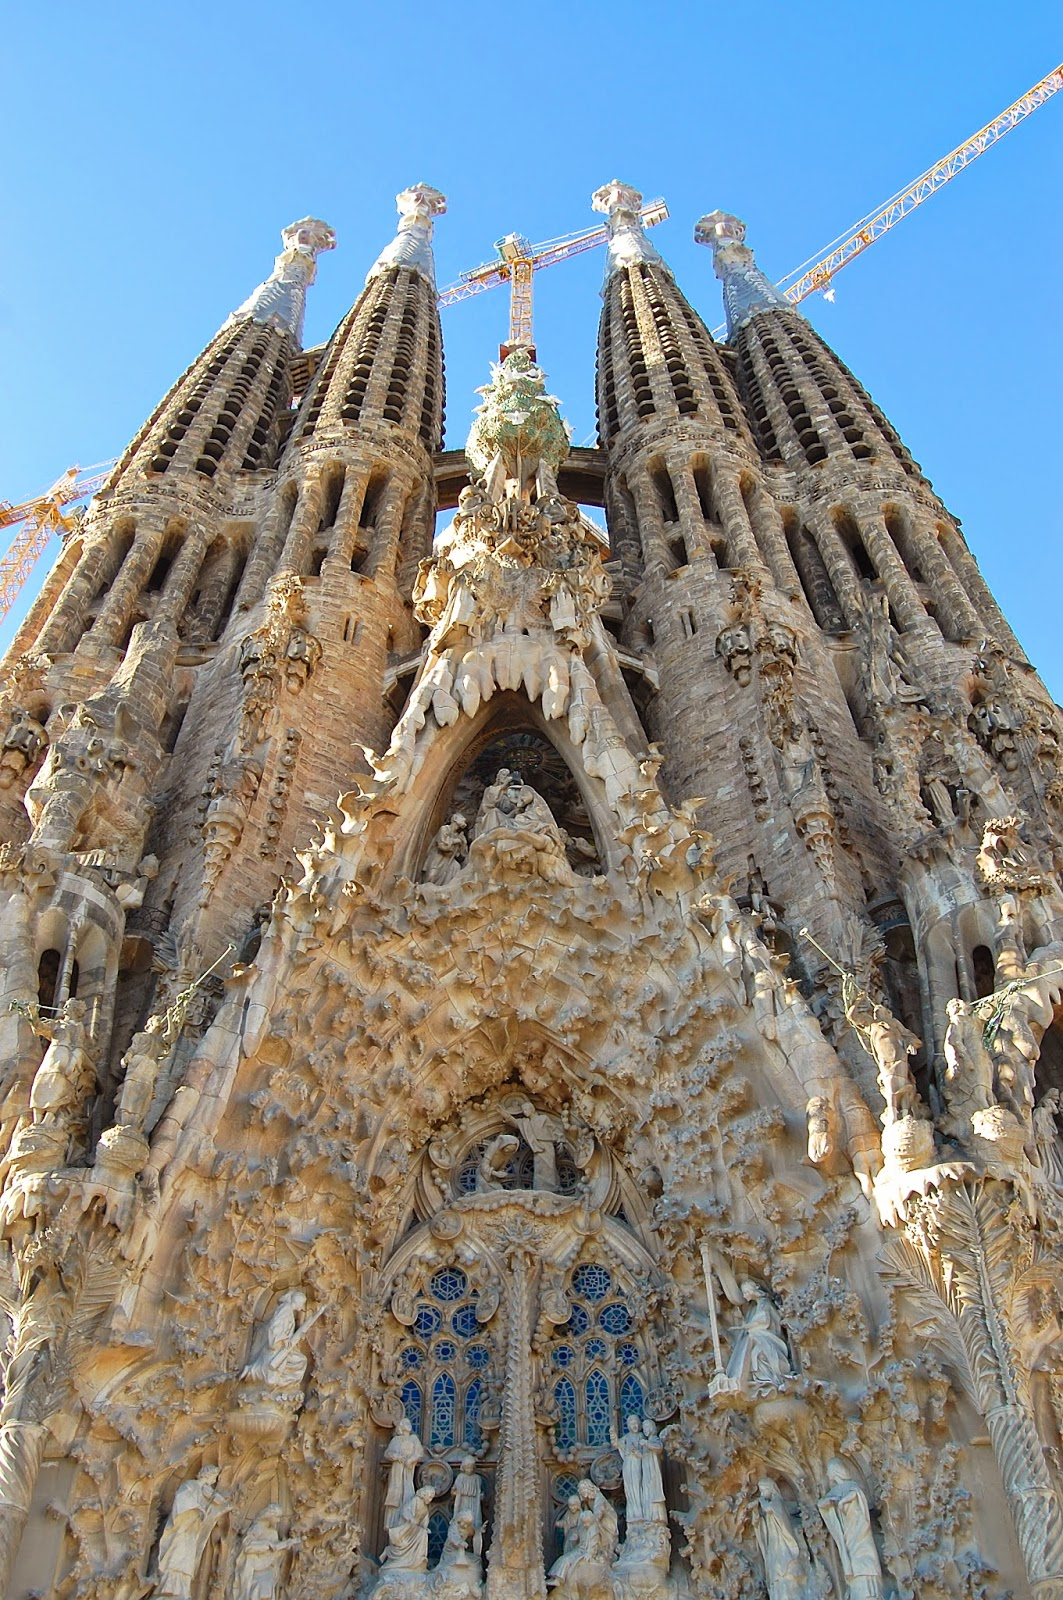 Dripping stone on the Nativity Facade of the Sagrada Família